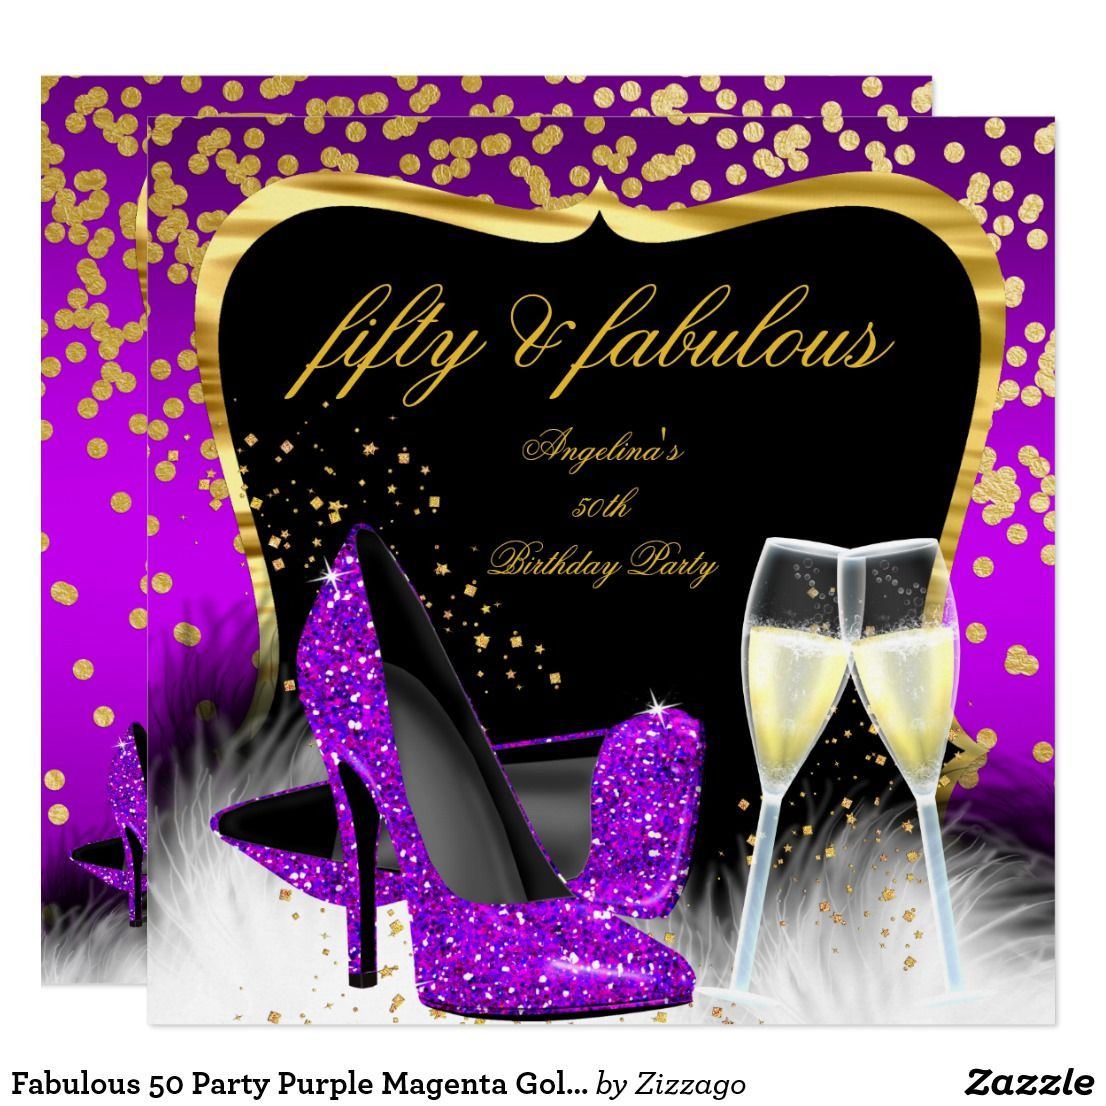 glitter high heel bud vase of fabulous 50 party purple magenta gold champagne invitation in 2018 with fabulous 50 party purple magenta gold champagne card fabulous 50 champagne glitter high heels shoes purple pink magenta gold silver white 50th birthday